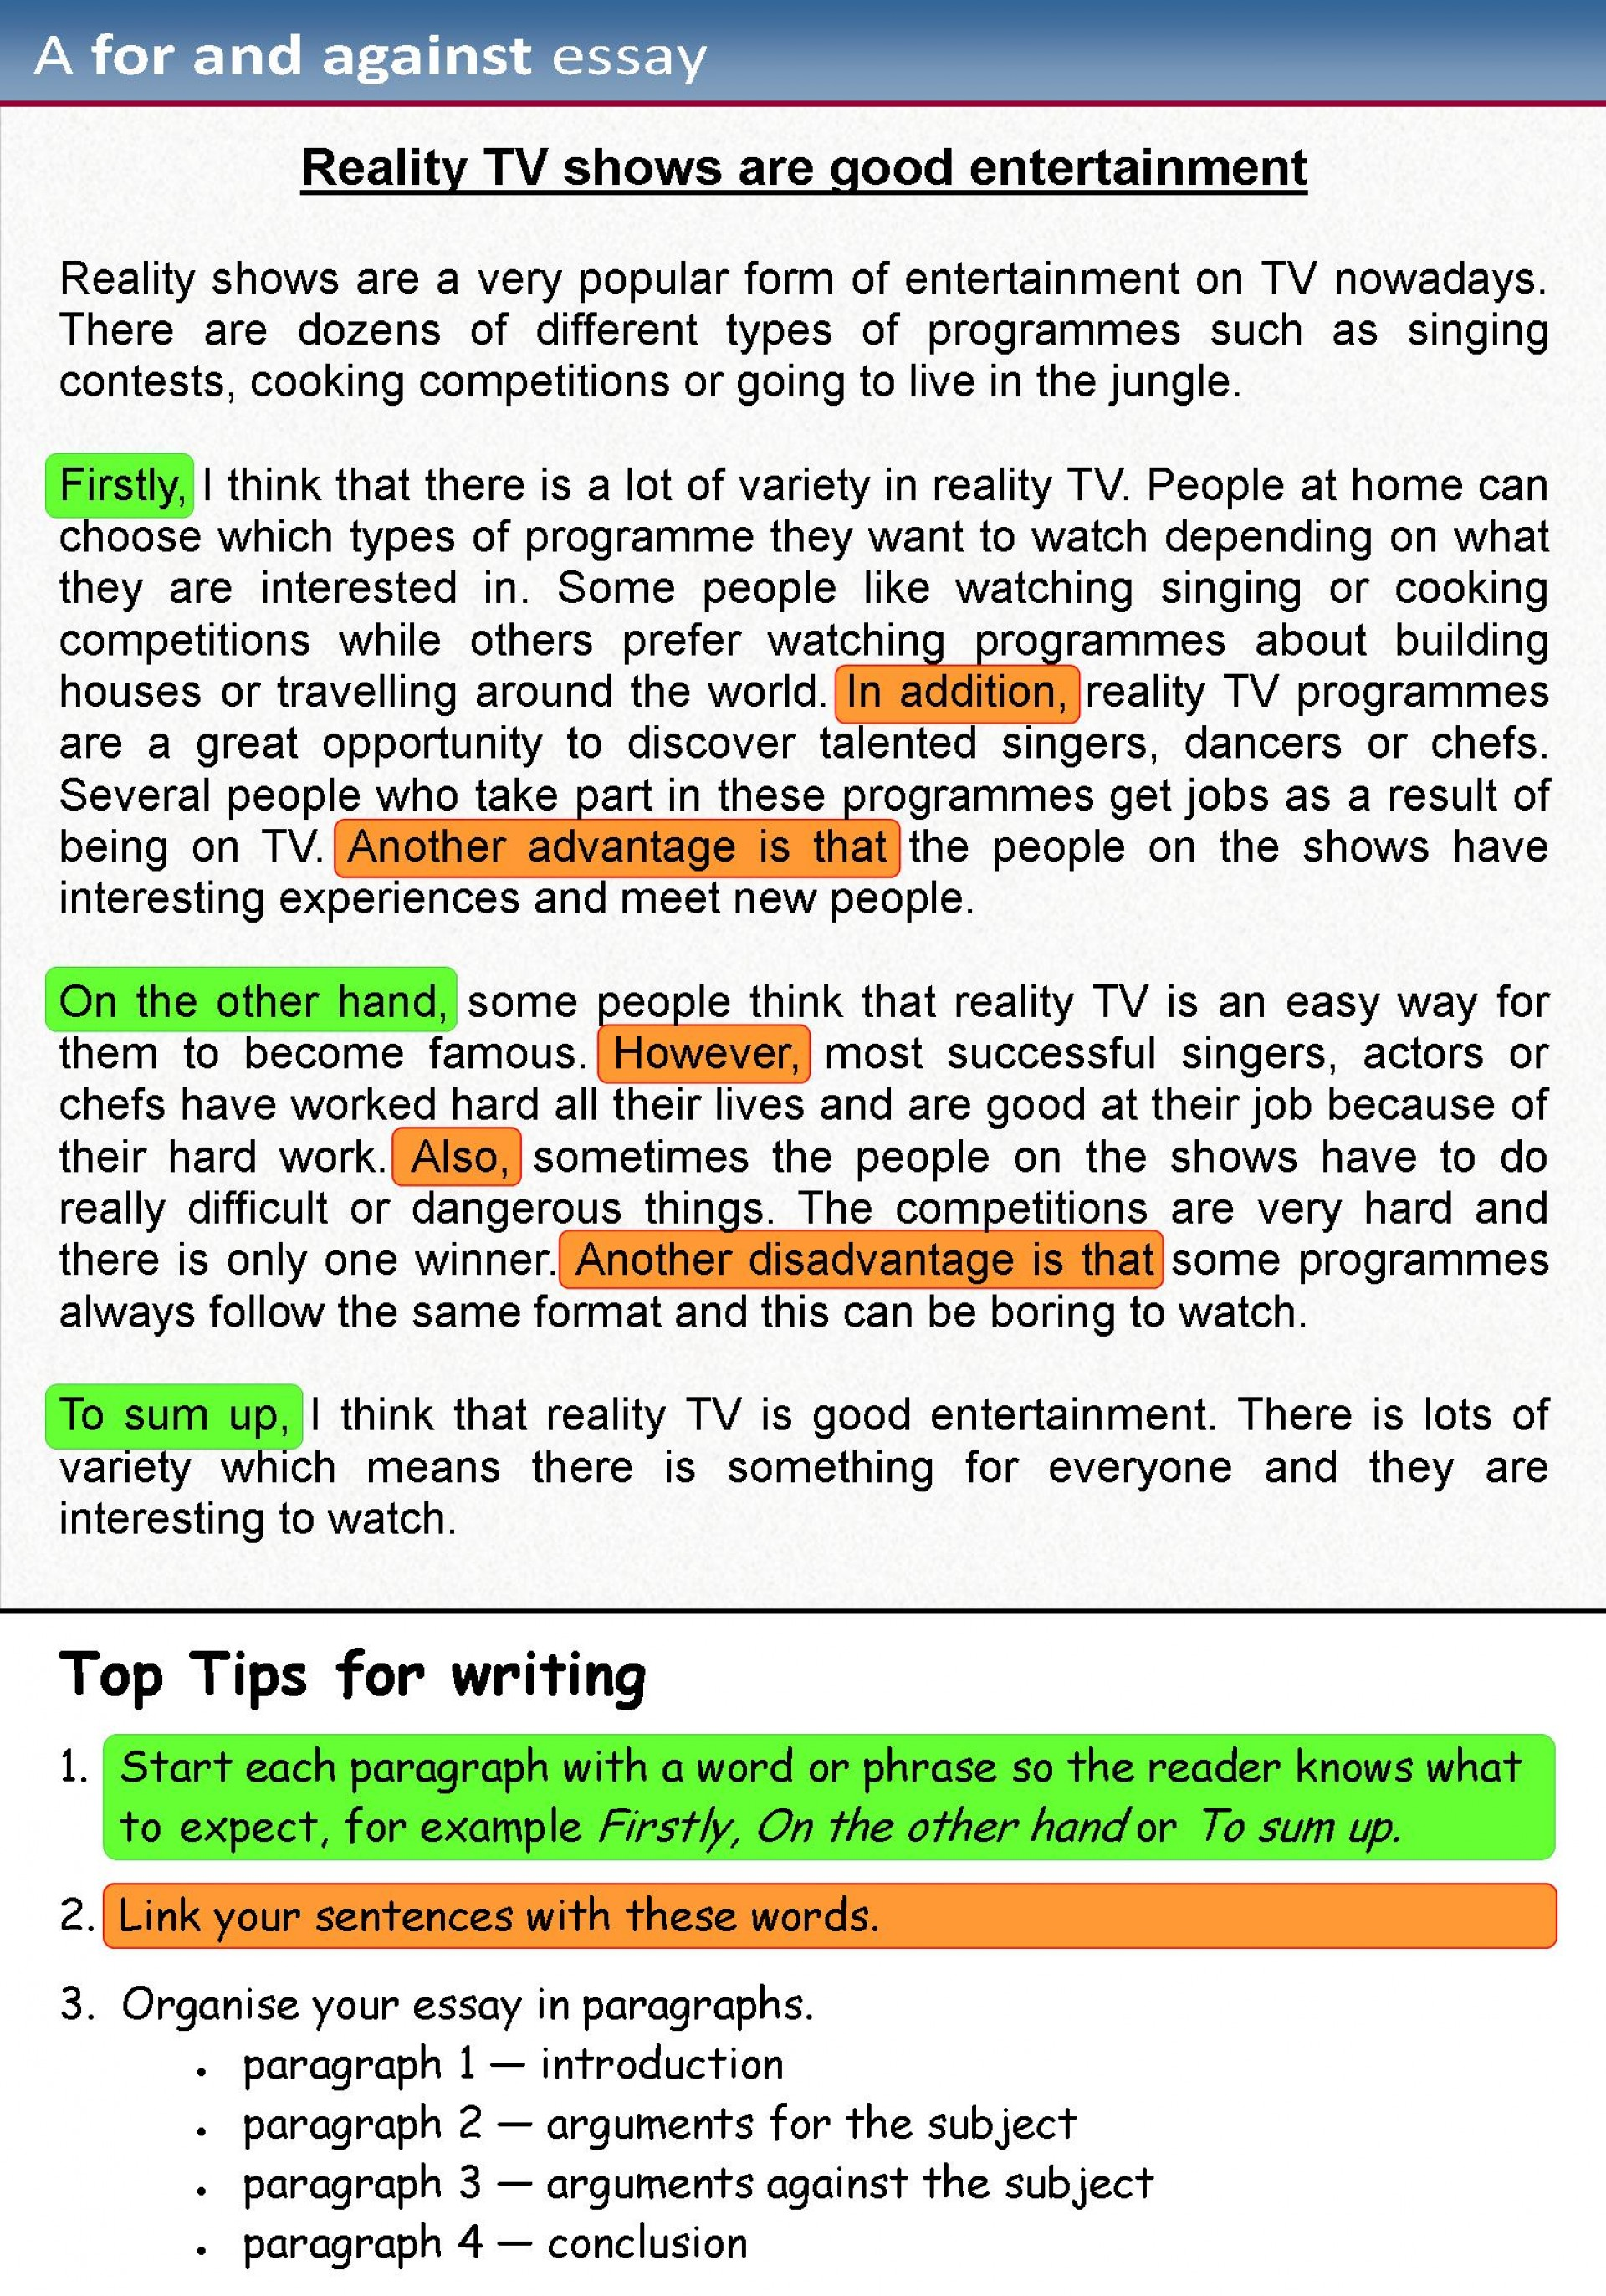 021 Essay Example Paragraph For Against 1 Magnificent 2 Topics About Friendship Graphic Organizer 1920